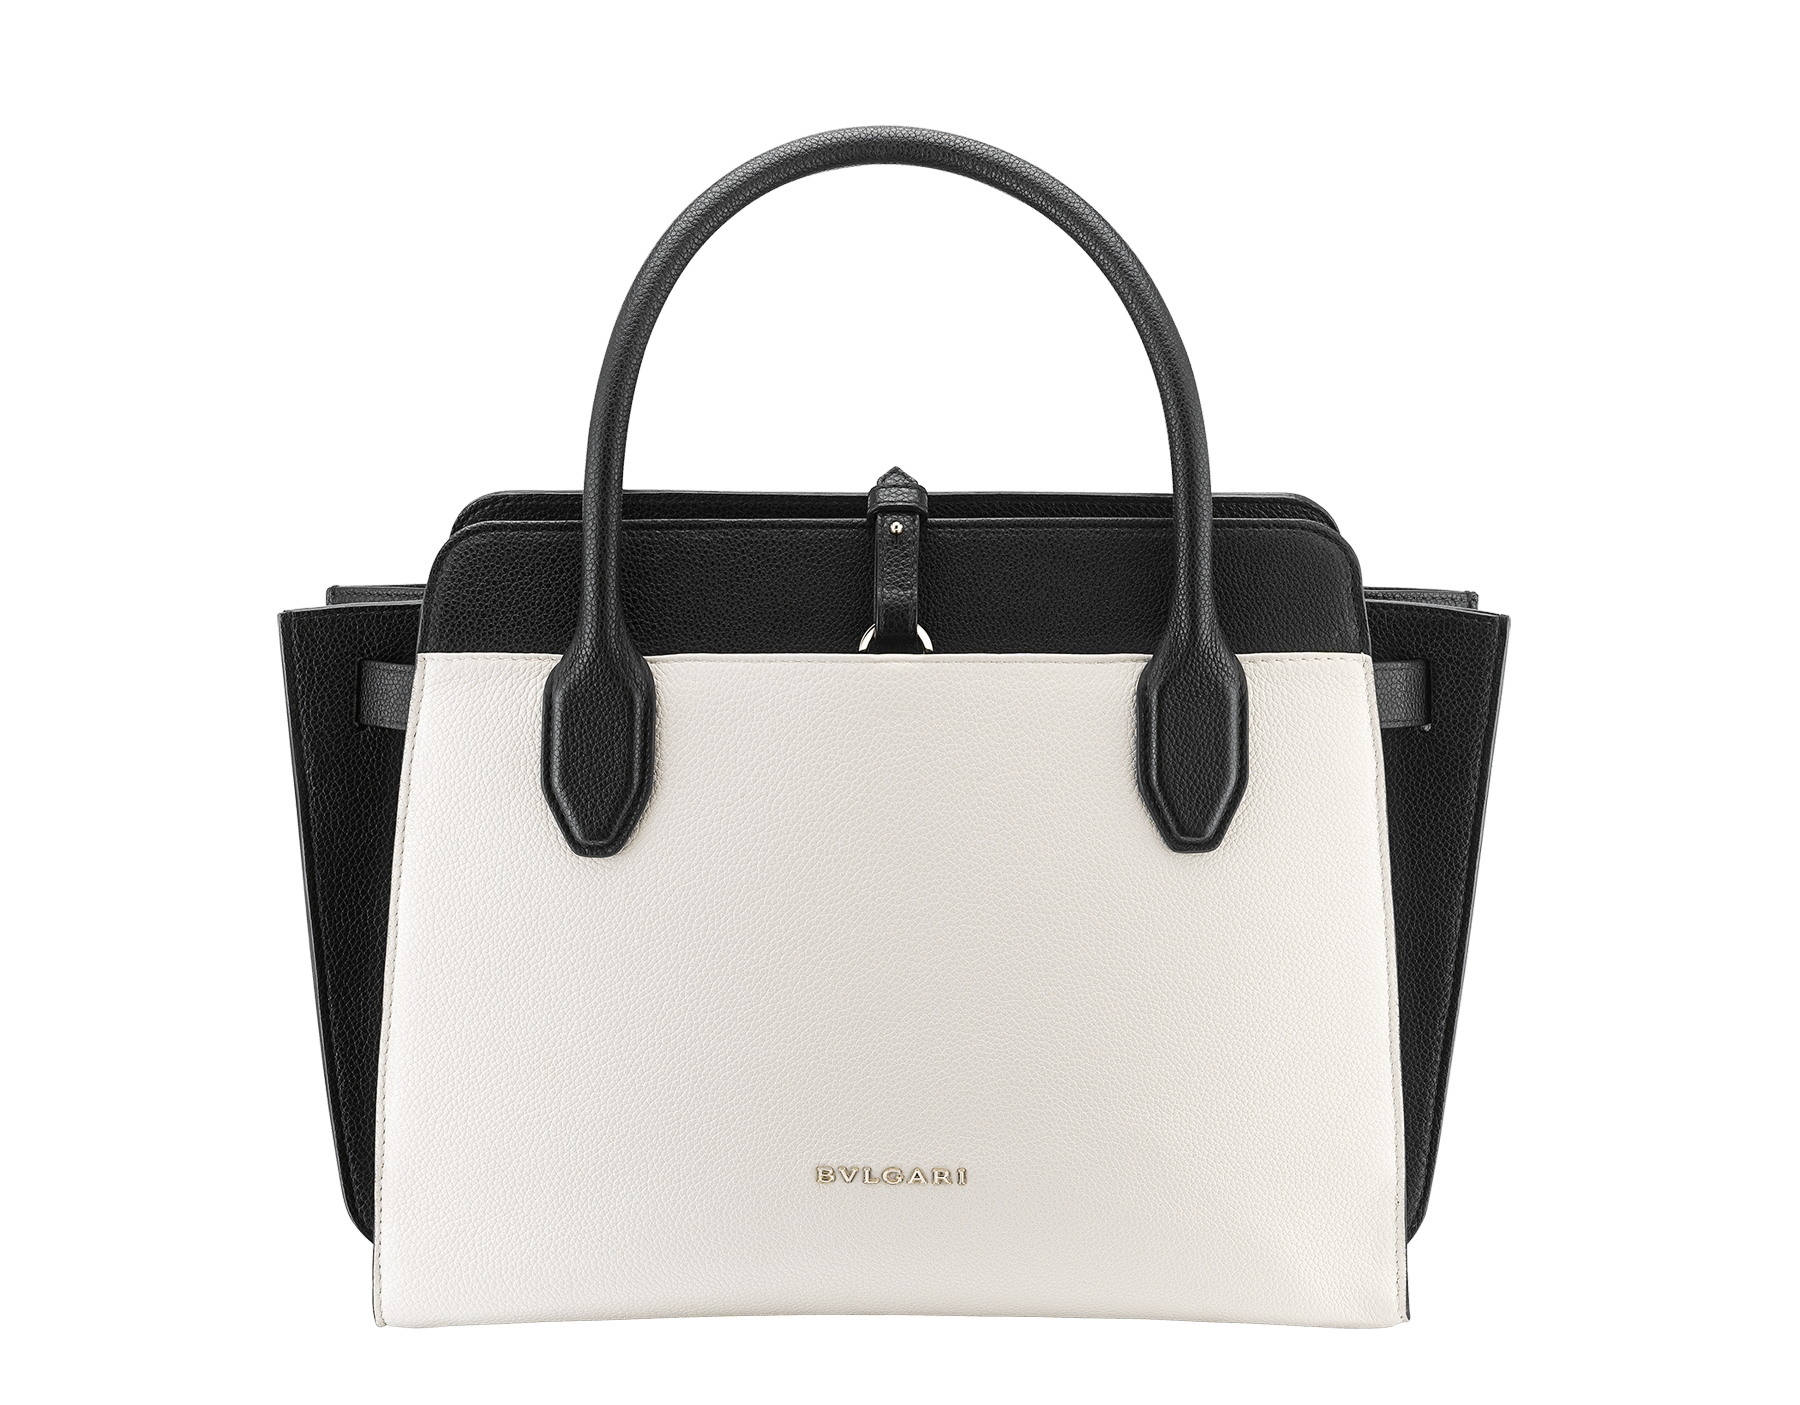 Tote bag BVLGARI BVLGARI Alba in white agate and black grain calf leather with zip closure. Pendant motif in brass light gold plated metal featuring the iconic double logo and Tubogas motif. 282797 image 3